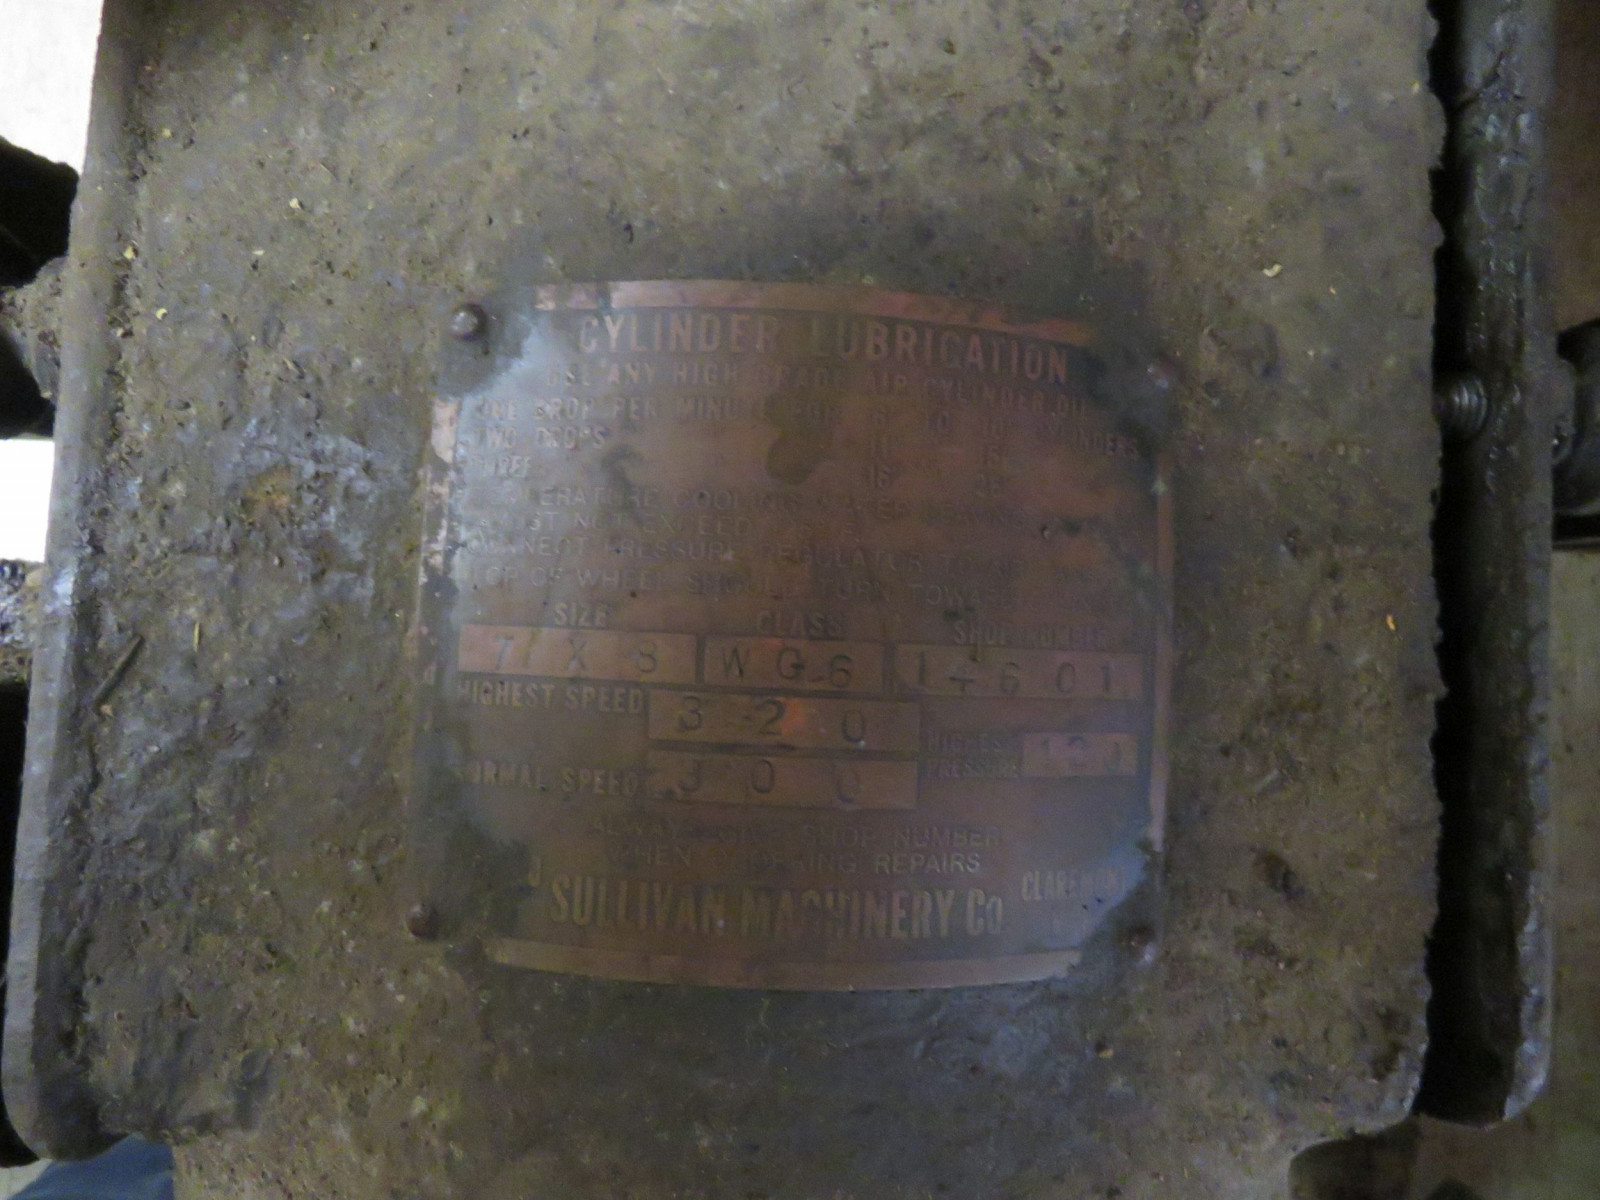 Sullivan Machinery Company Stationary Engine - Image 2